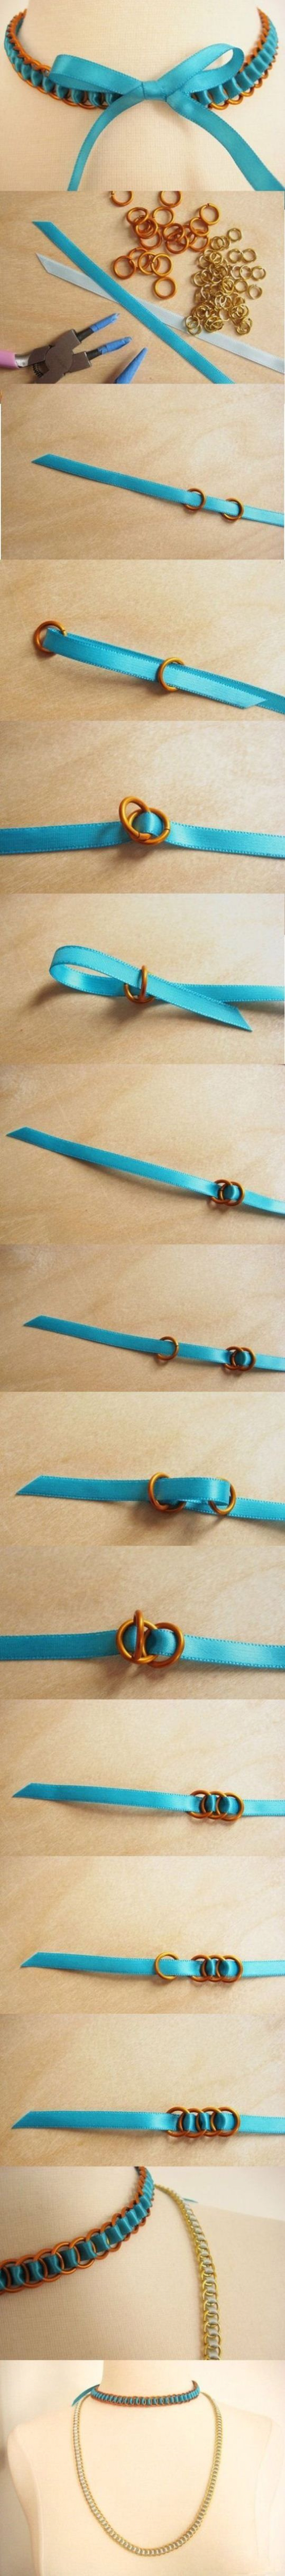 DIY Fashion Necklace. Could add small dangles to each ring... or some of them